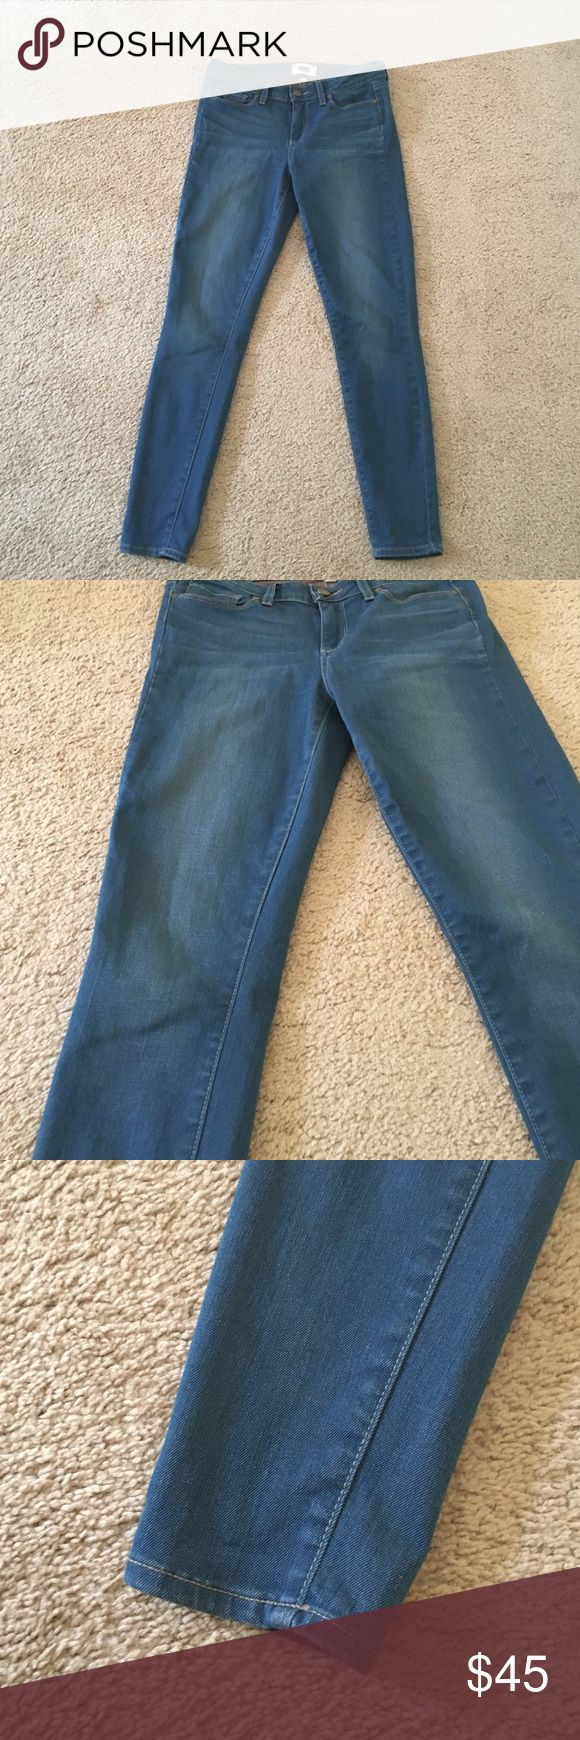 Paige jeans! These jeans are so soft, and stretchy! Paige are the best, these just don't fit me. Selling at a really good price bc holding onto them does me no good. They are a really pretty blue jean color. Not a dark wash and not light either. Ask any questions and bundle! Paige Jeans Jeans Skinny